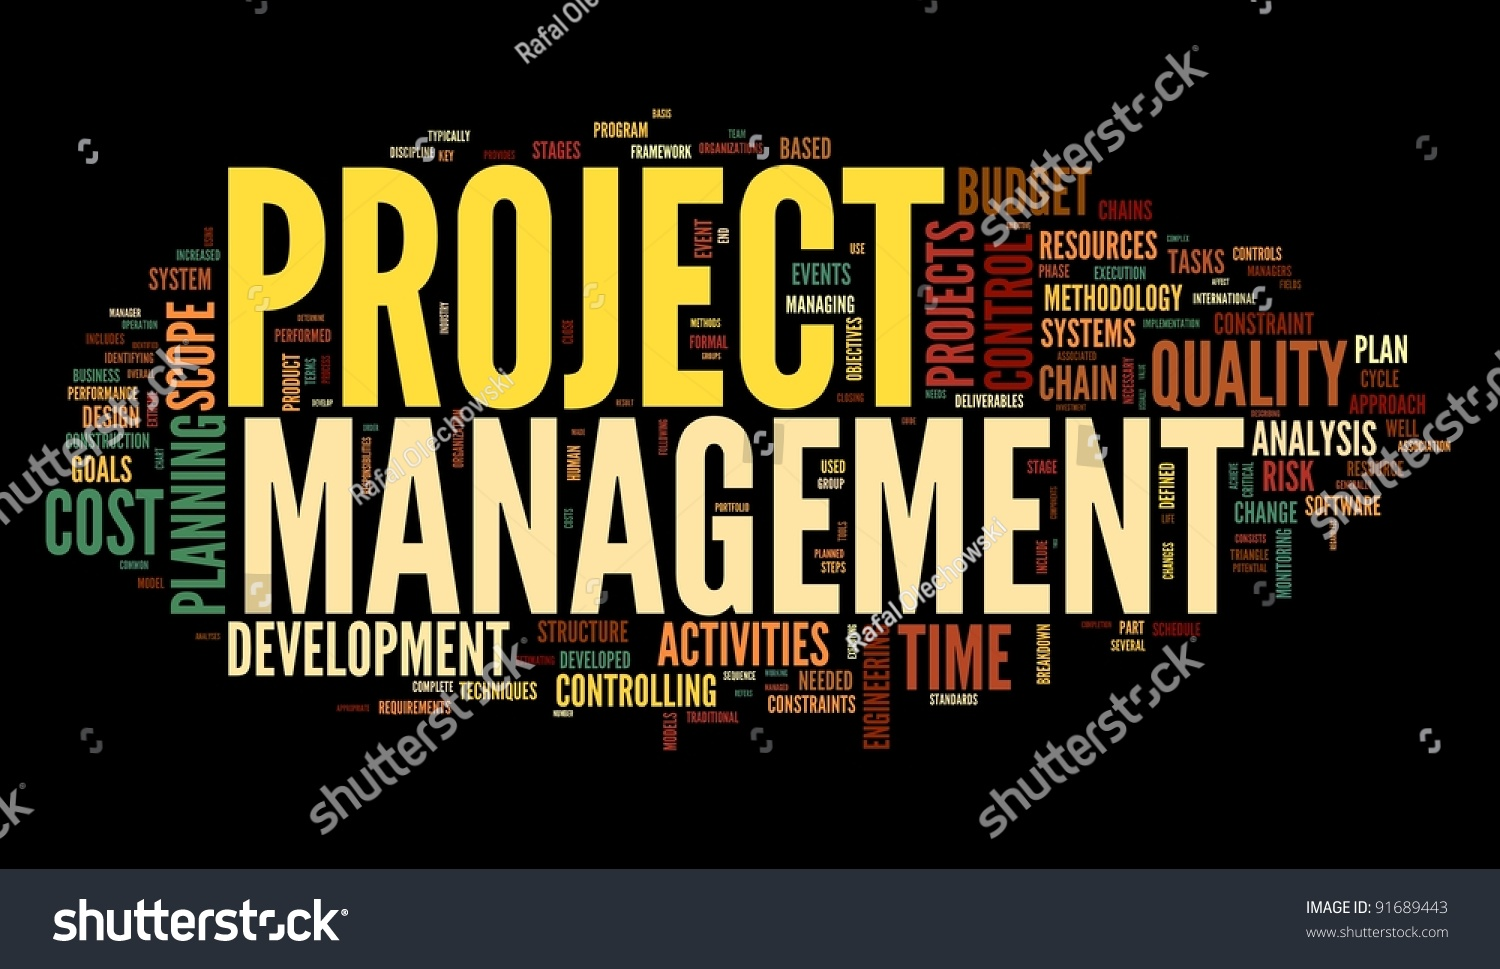 Project Management Concept Word Tag Cloud Stock. Portnov Computer School Auto Cache Downloader. Best Renters Insurance Nj Chicago Call Center. Business Plan For Real Estate Investment. Cosmetic Dentistry Blog Best Plumbing Services. Best Stock Advice Website New Security System. Top 10 Retirement Plans List Of Mental Health. Photography Schools California. Direct Mail Advertising Locksmith Layton Utah